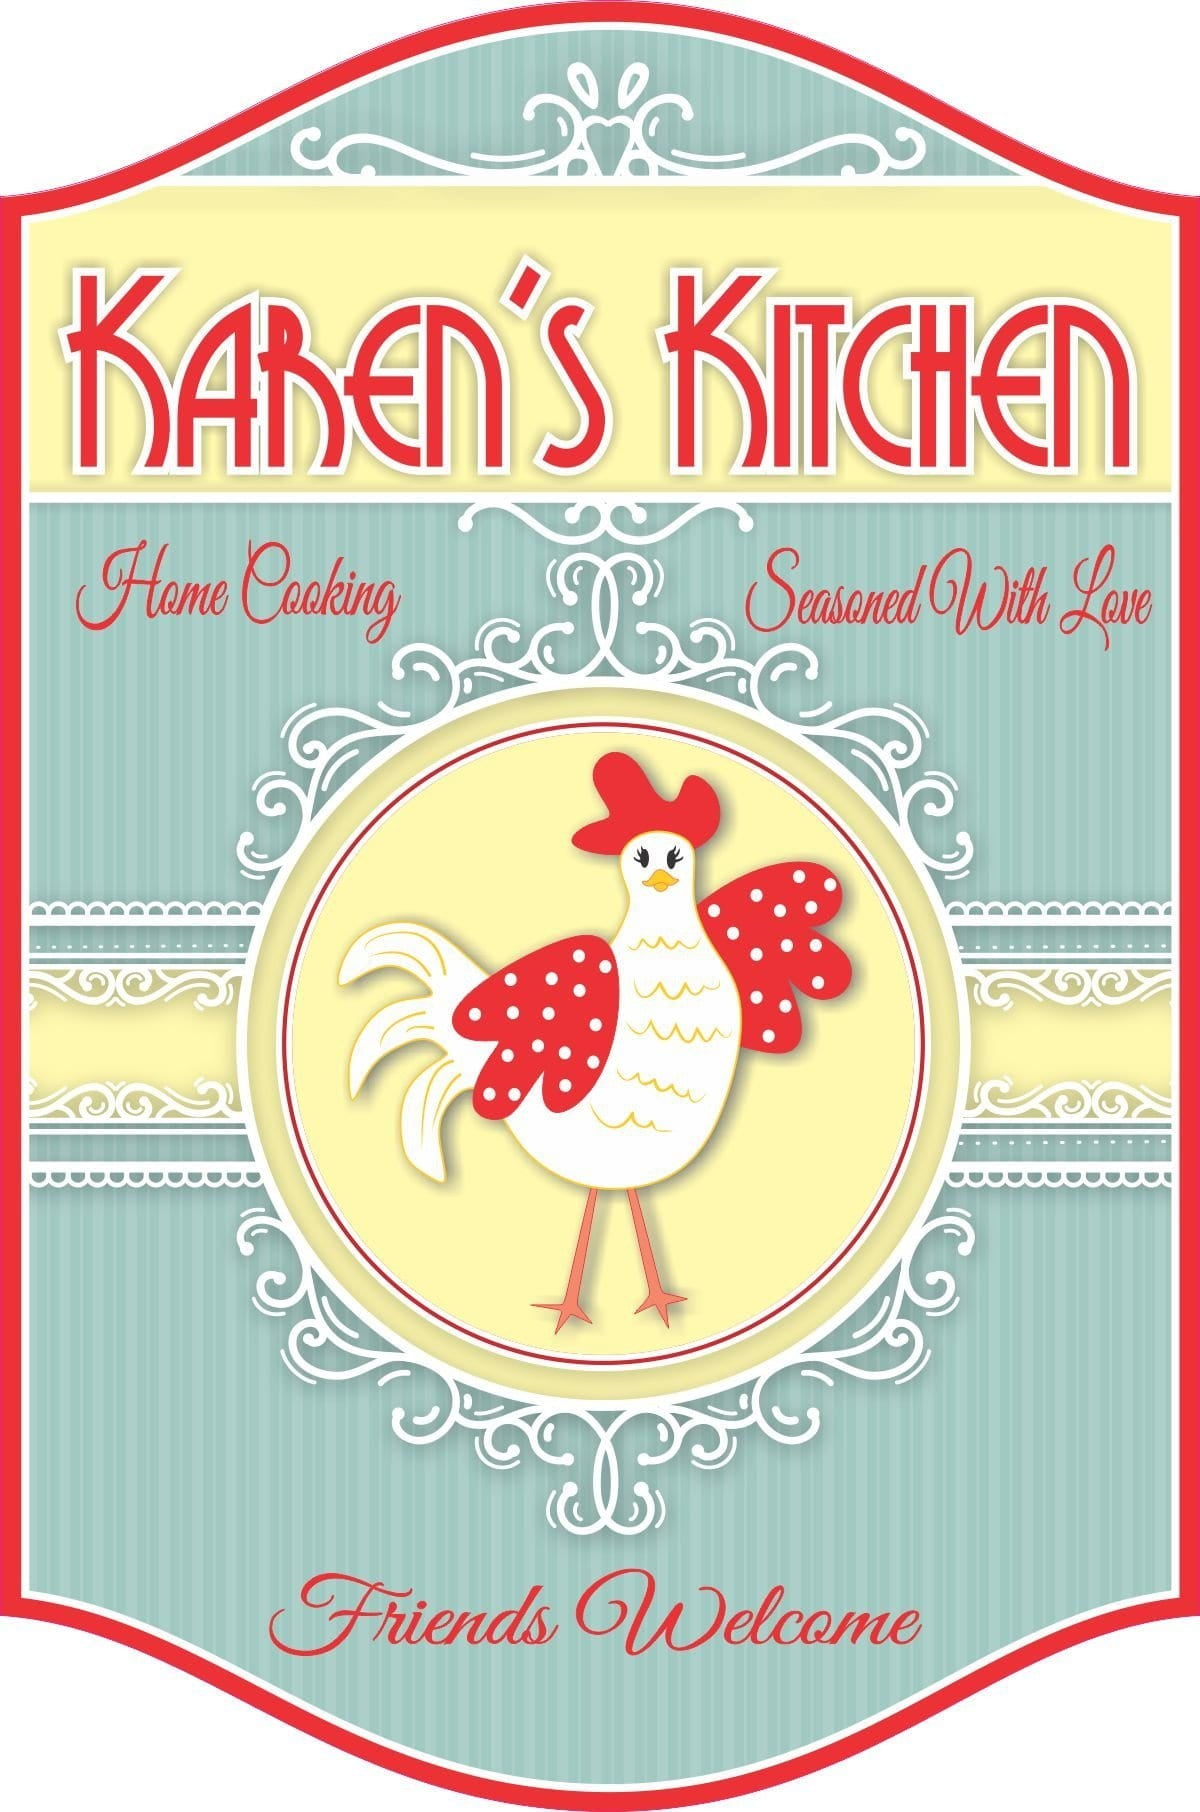 Kitchen Chicken | Personalized Signs | Fun Sign Factory